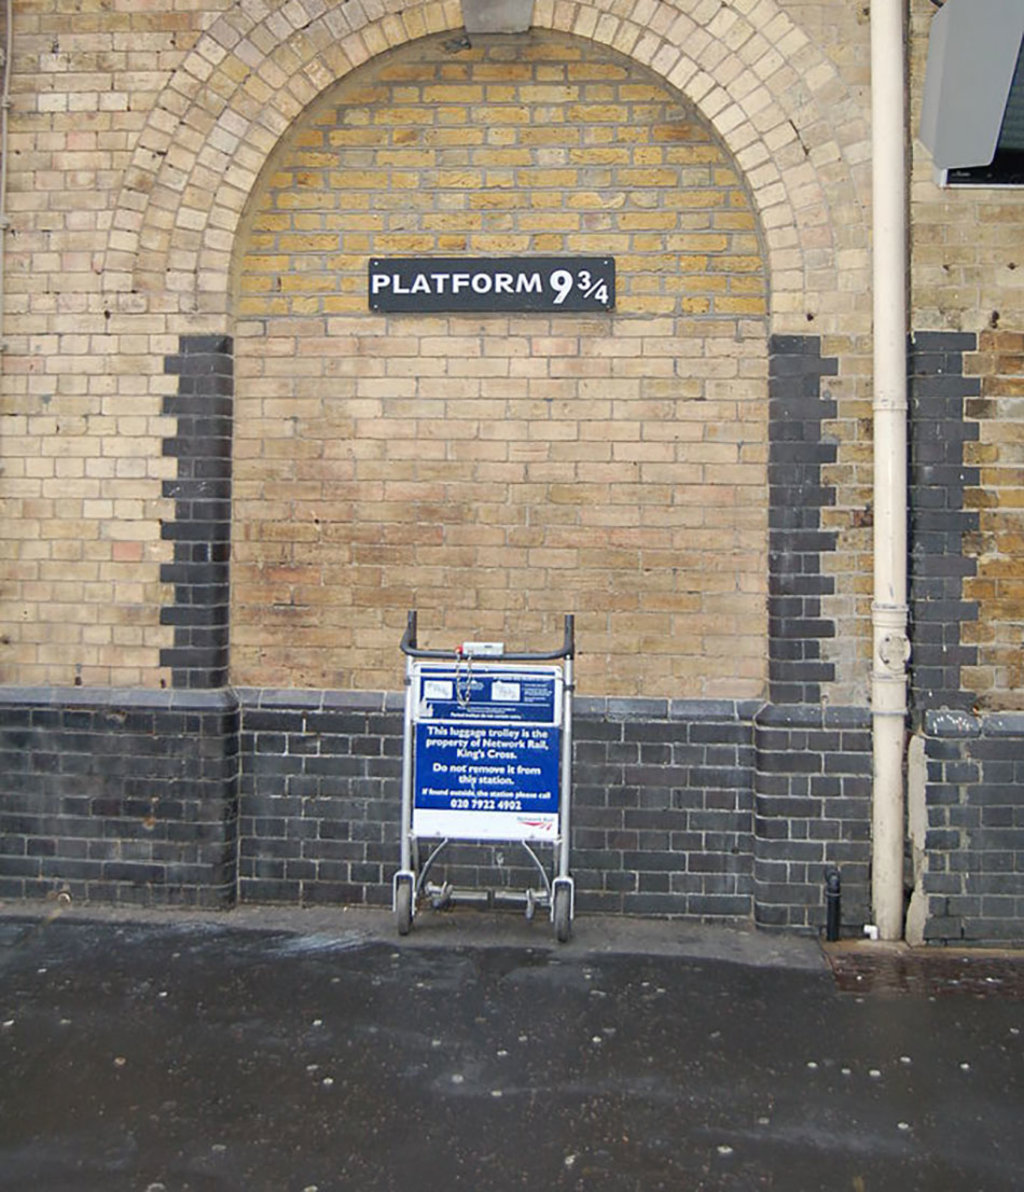 KingsCross, Platform 9 3/4. Di Jcfrye di Wikipedia in inglese  , attraverso Wikimedia Commons